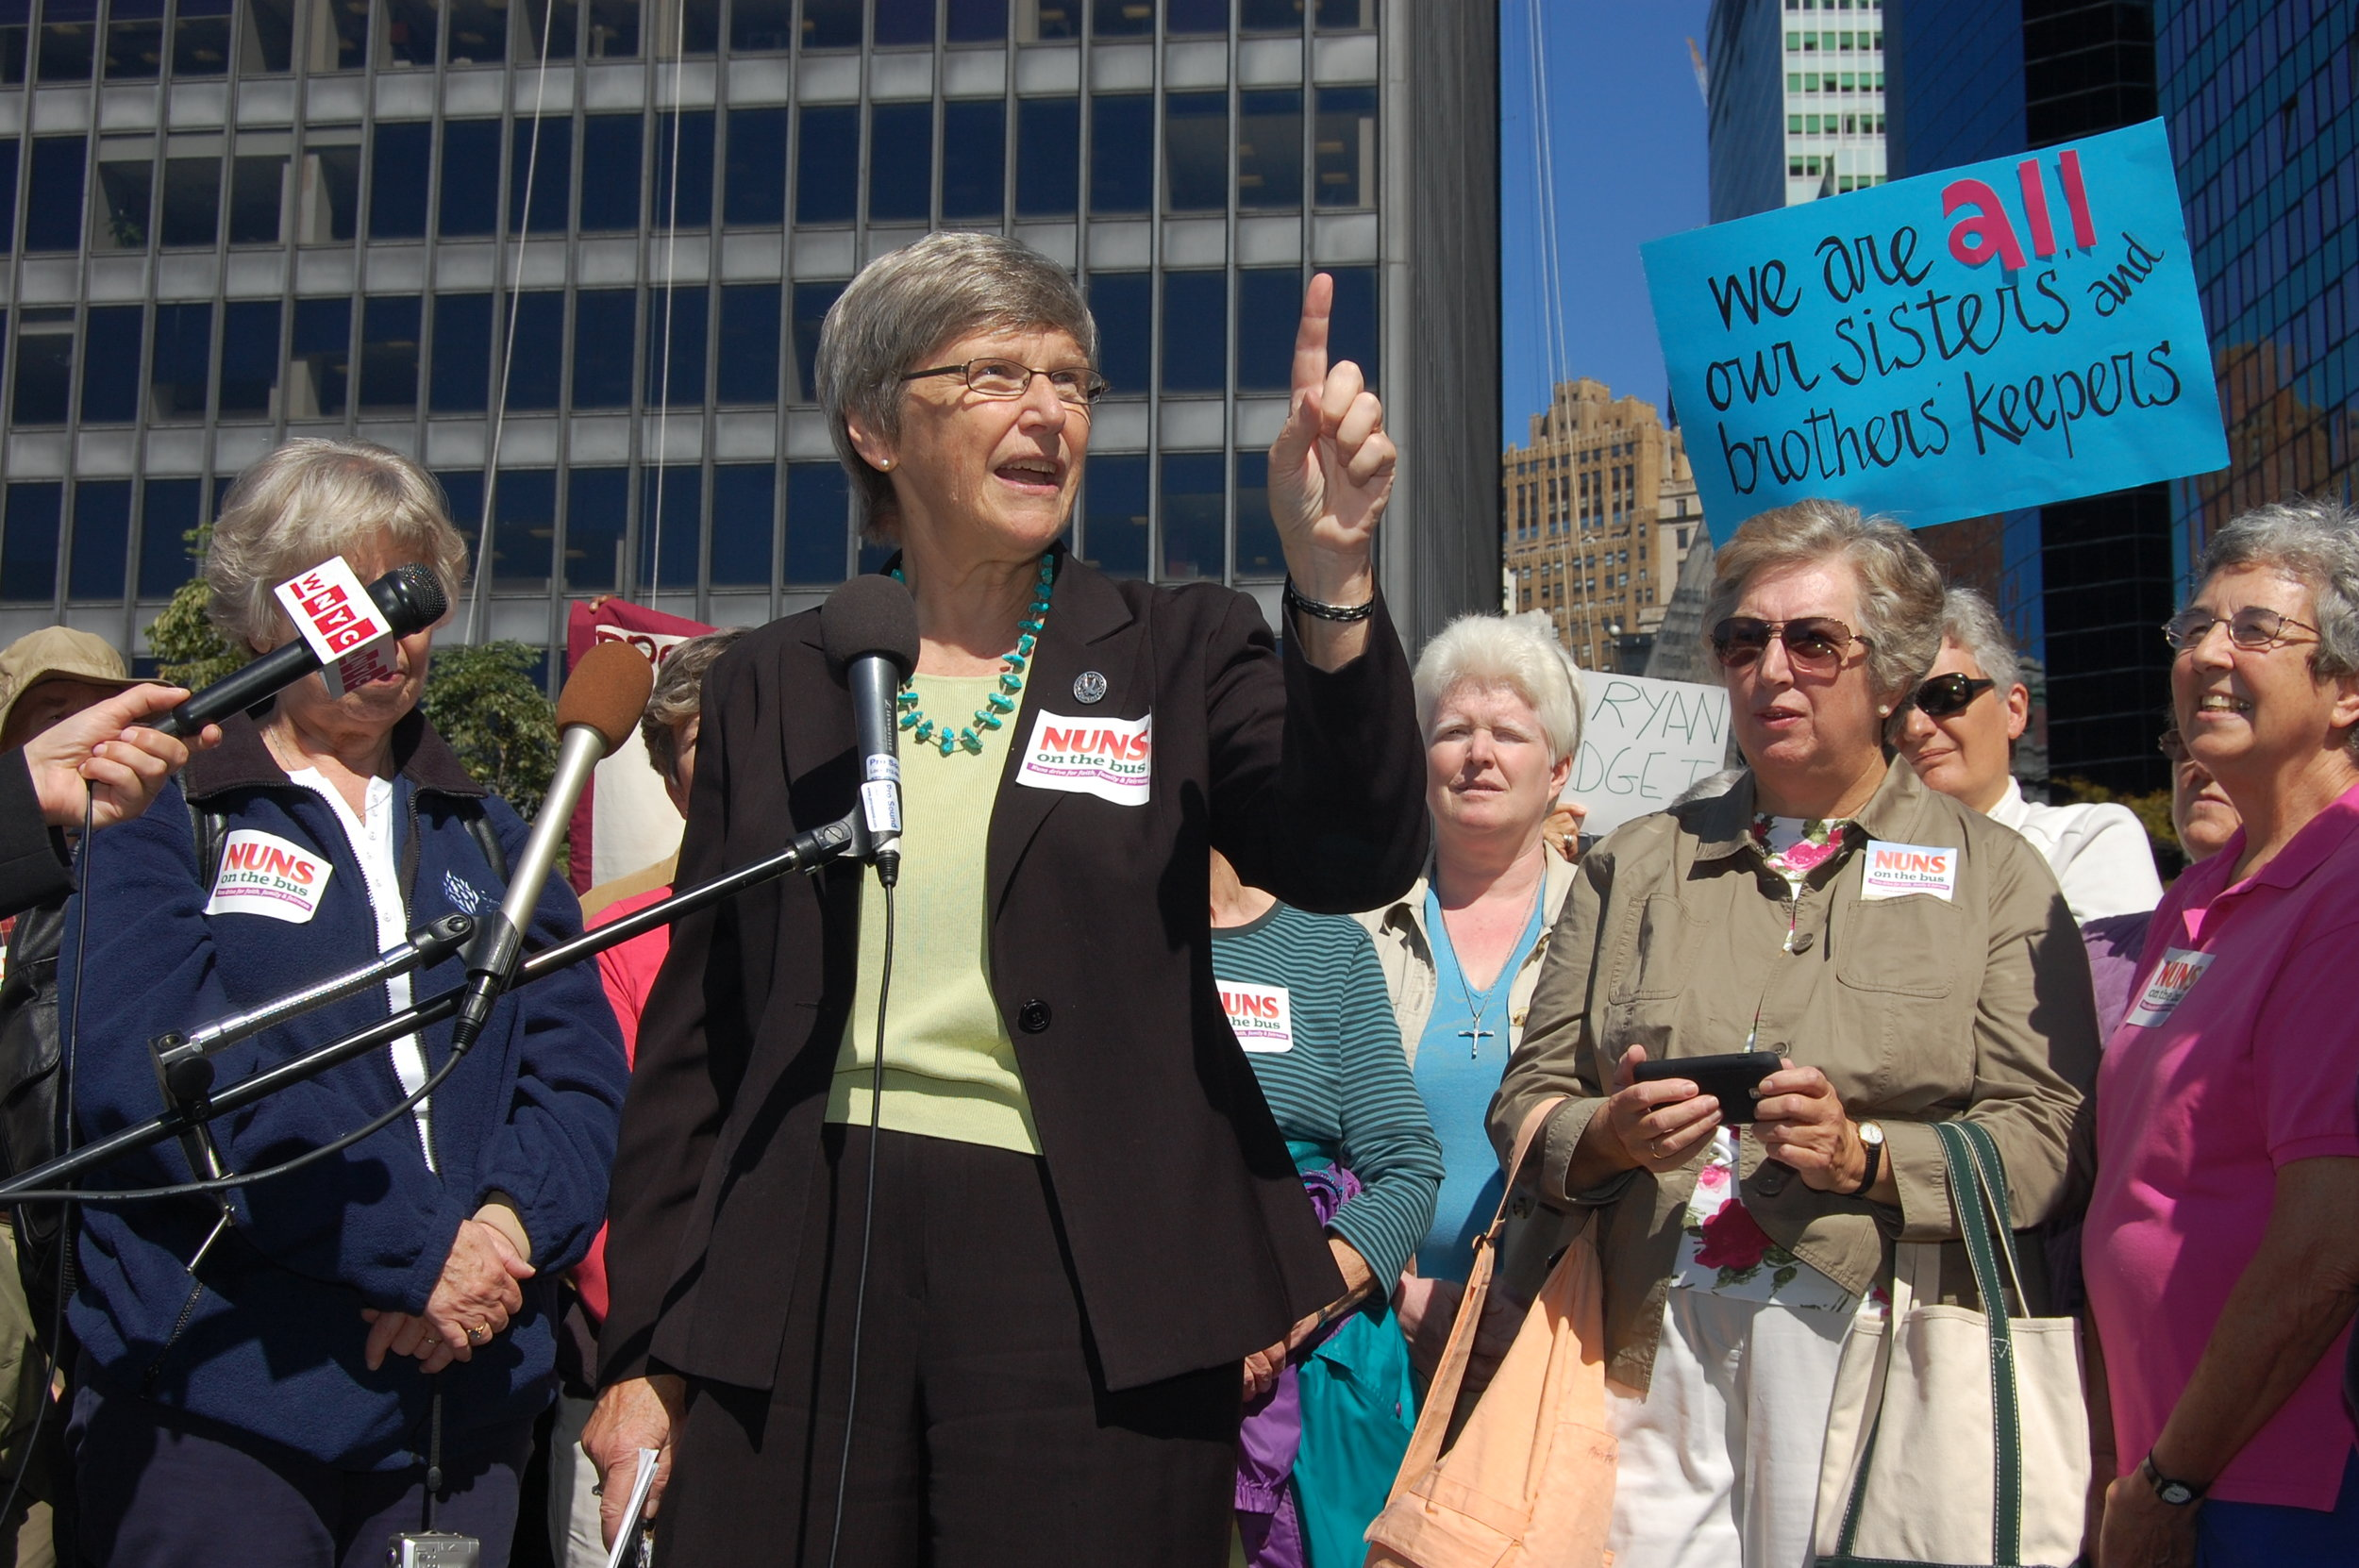 Sister Simone with Communication Workers of America on Nuns on the Bus Tour,  2012